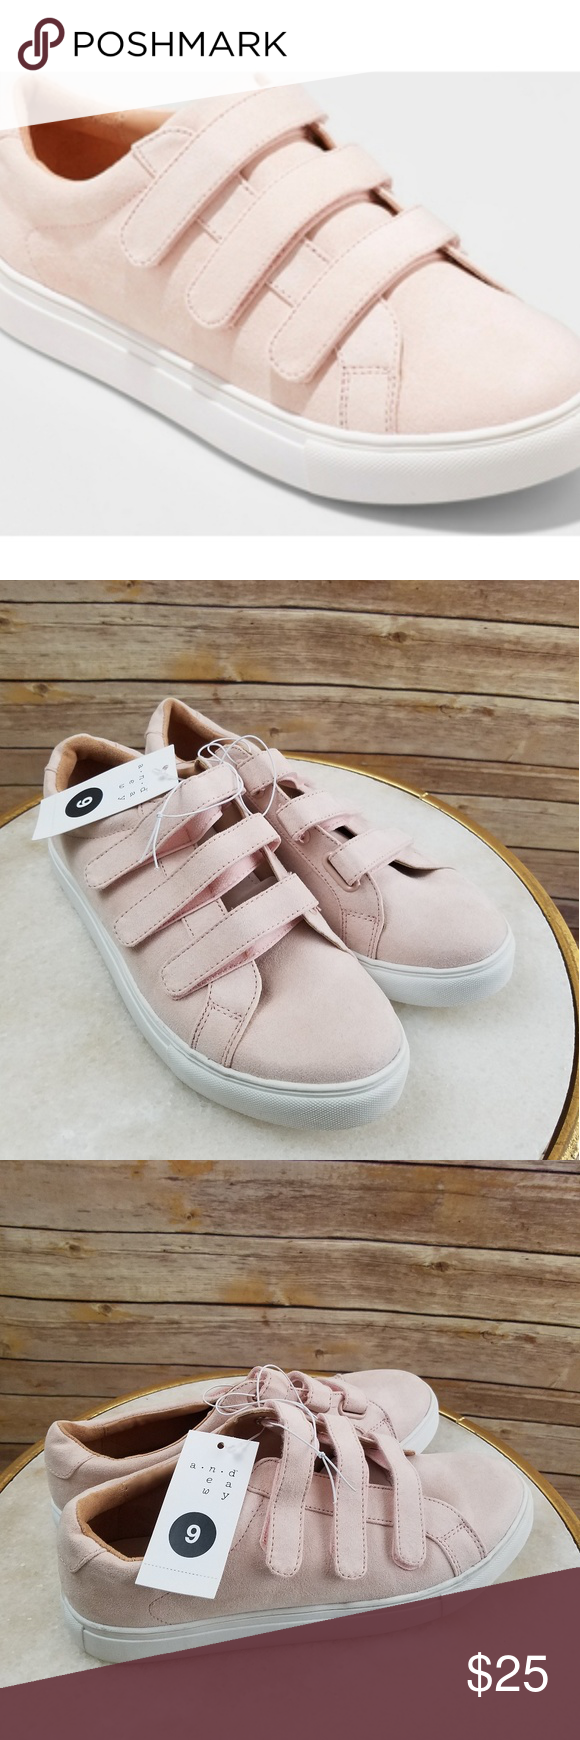 ef3daf1b3f1e6 NWT, Whitney Triple Strap Sneakers Women's Whitney Triple Strap Sneakers - A  New Day. Color:Pink/ Blush. Size: 9 and 10. Andeawy Shoes Sneakers